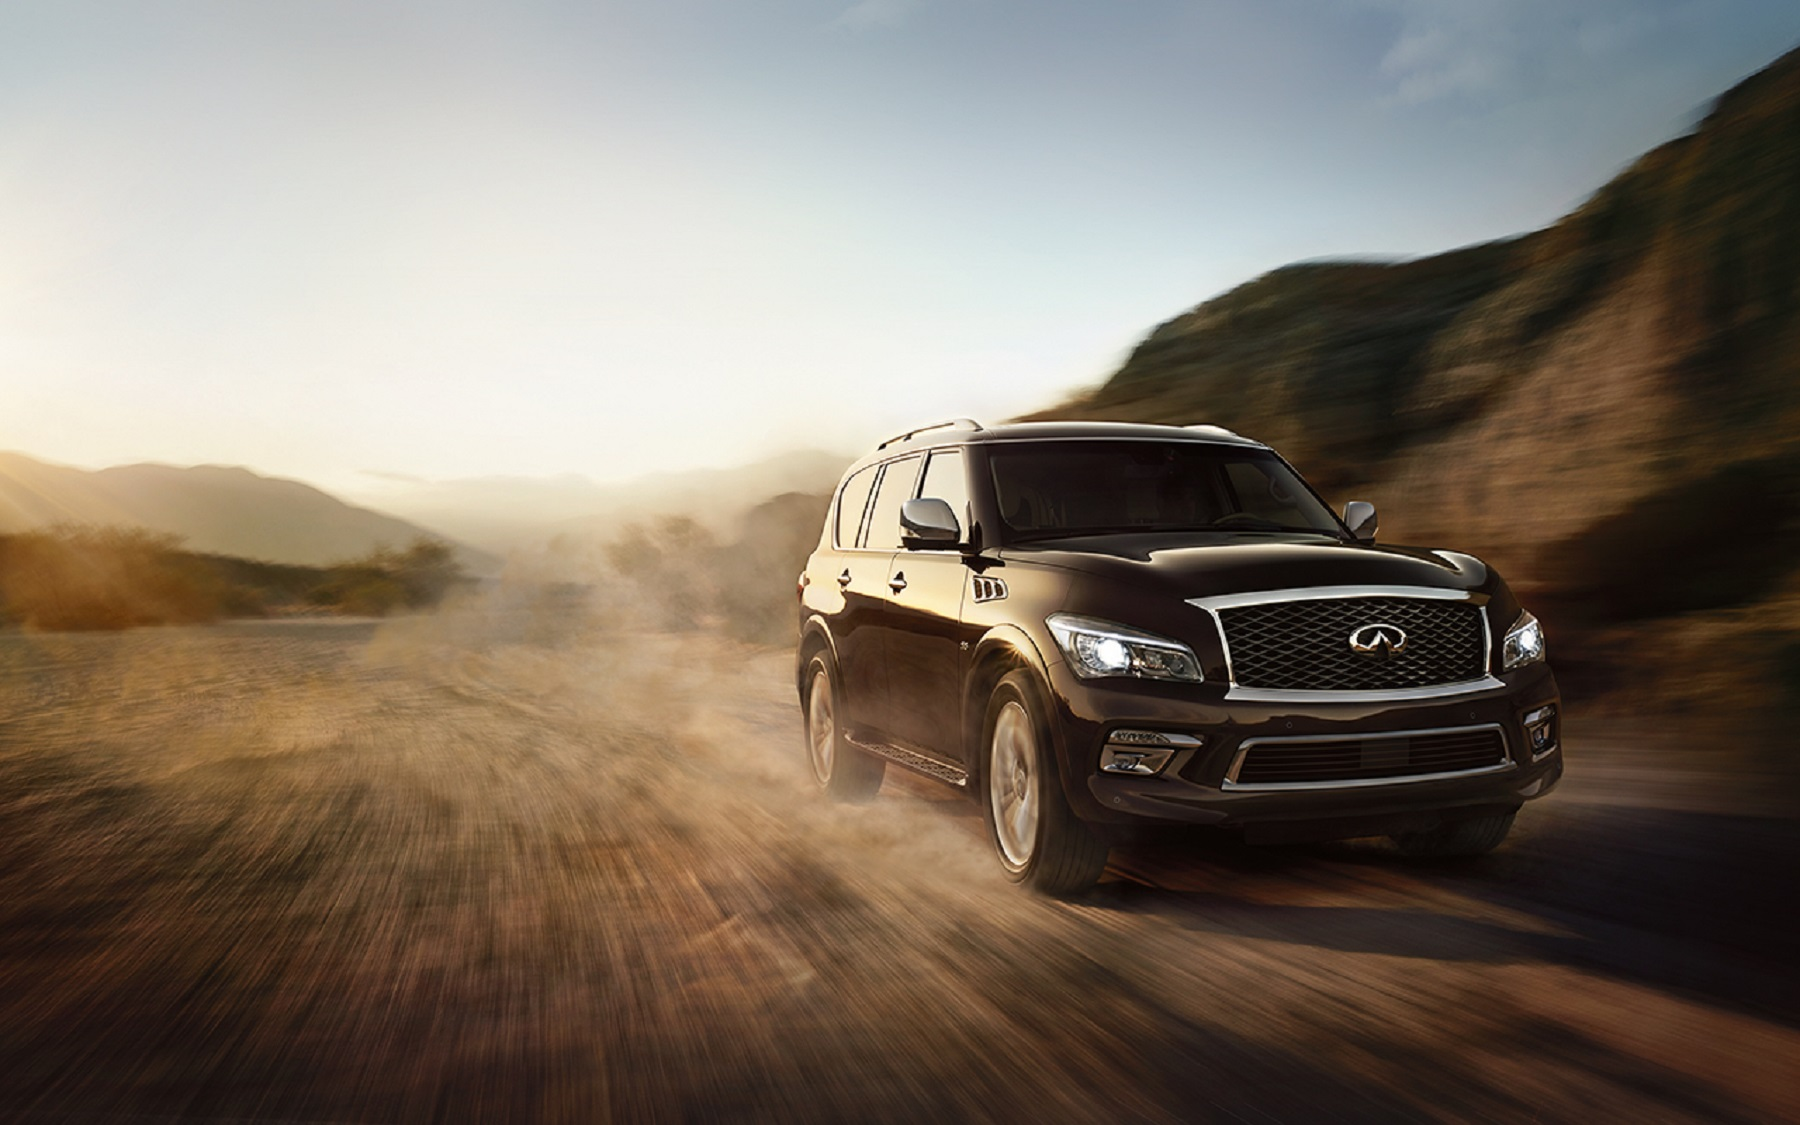 Manufacturer photo: Infiniti QX80 offers an unmatched combination of power, strength and luxury style -- capable of transporting up to eight adults and their belongings with spacious elegance